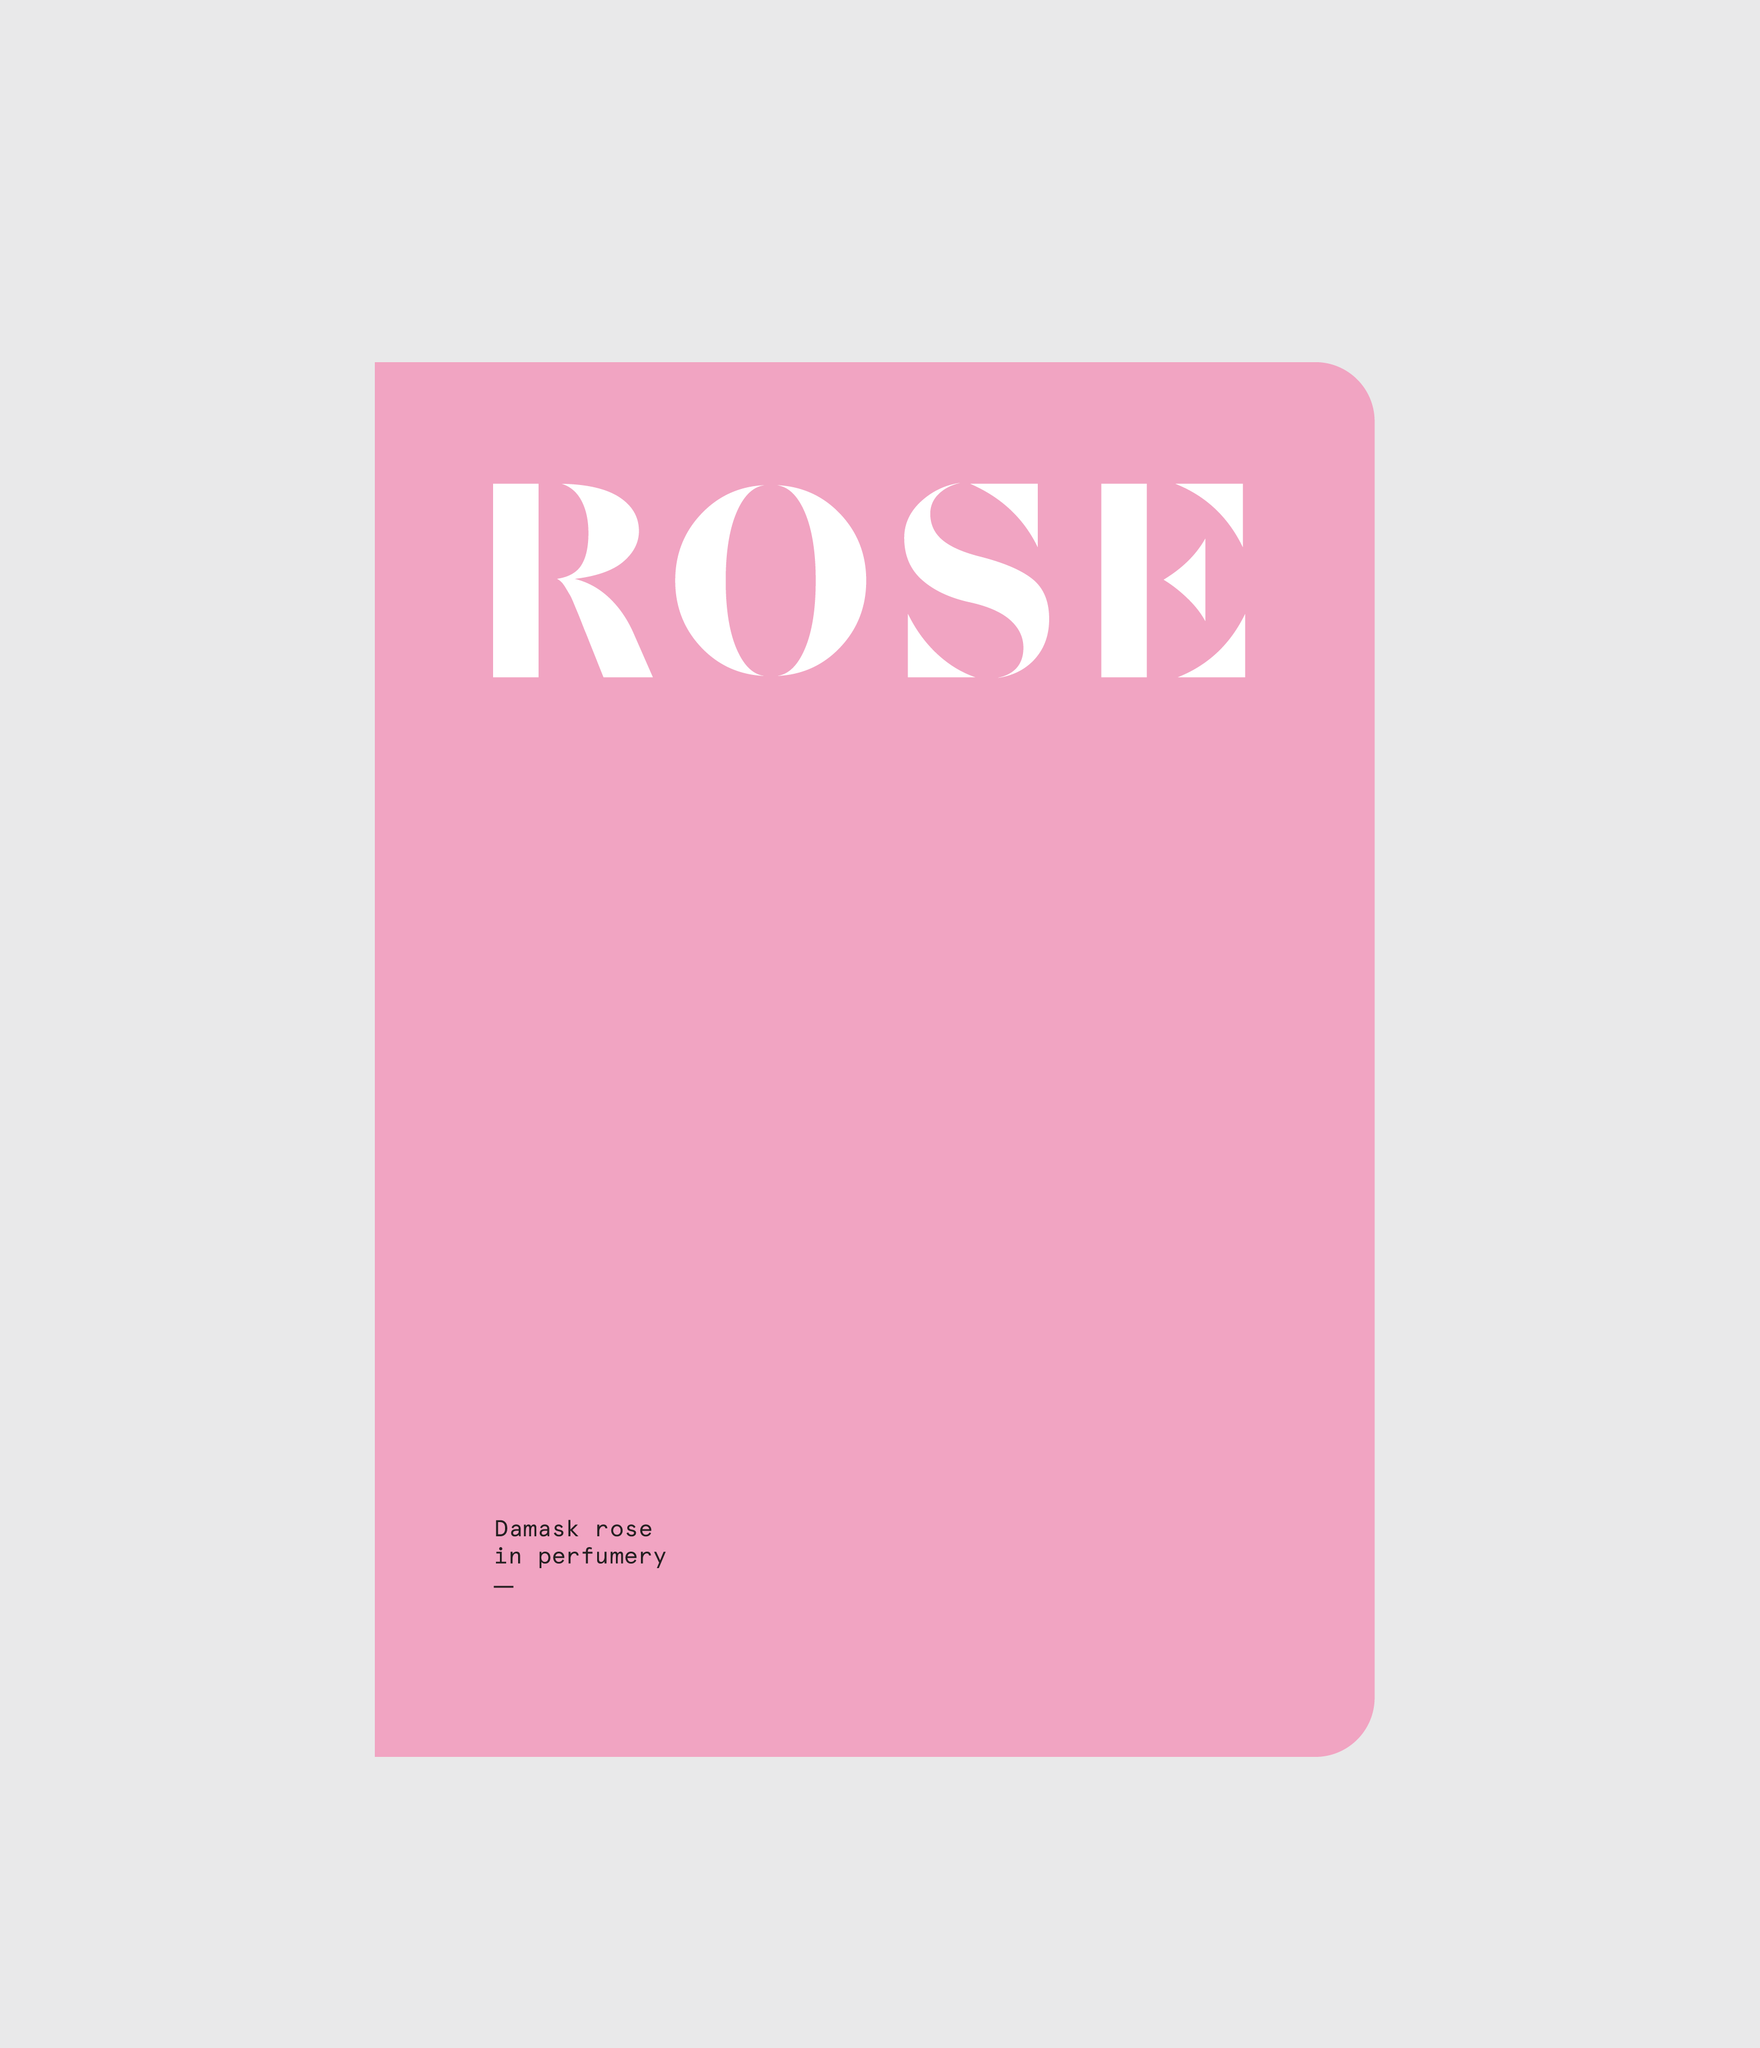 Rose | Damask Rose in Perfumery